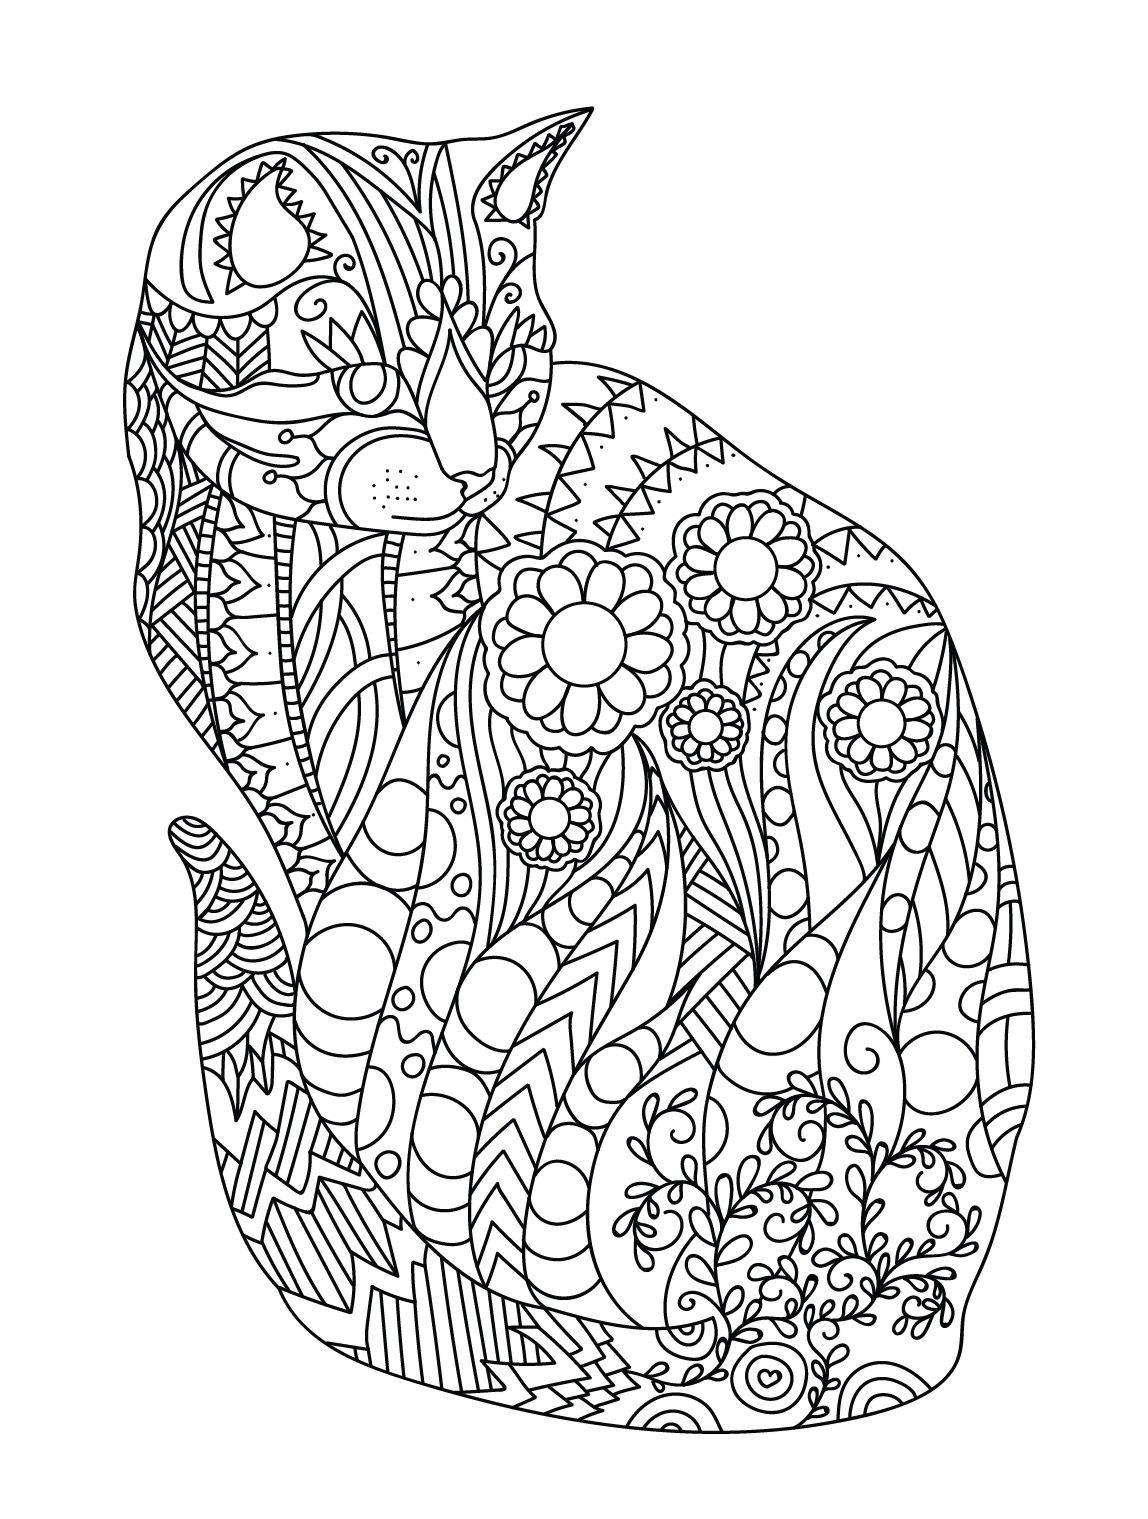 Cat   Colorish: coloring book for adults mandala relax by ...   free printable animal mandala coloring pages for adults